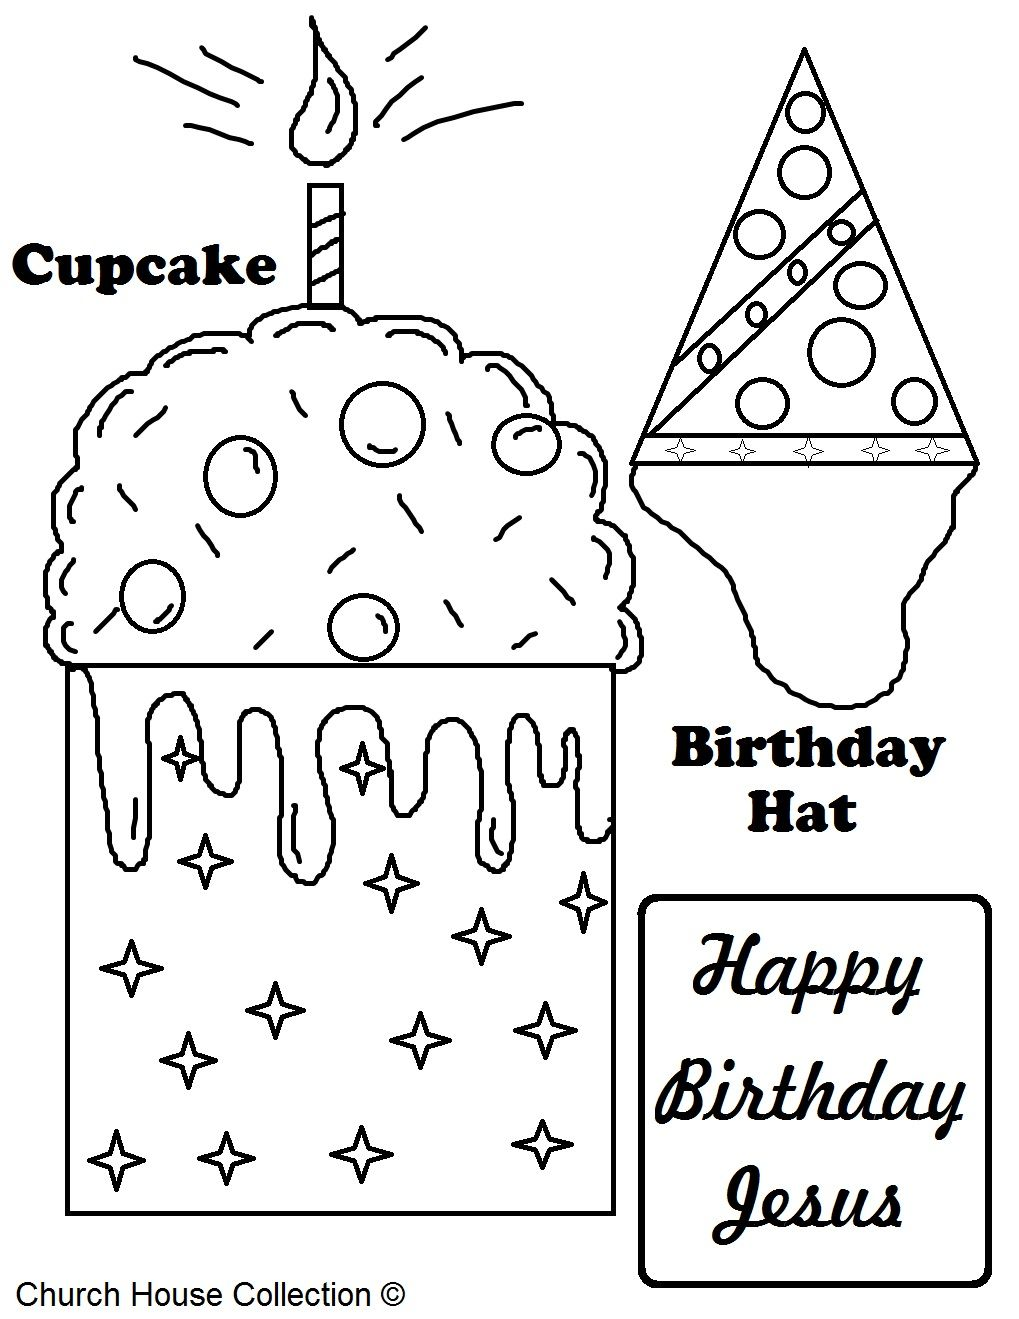 A Free Printable Happy Birthday Jesus Coloring Page For Kids In Sunday School Or Happy Birthday Coloring Pages Coloring Birthday Cards Happy Birthday Printable